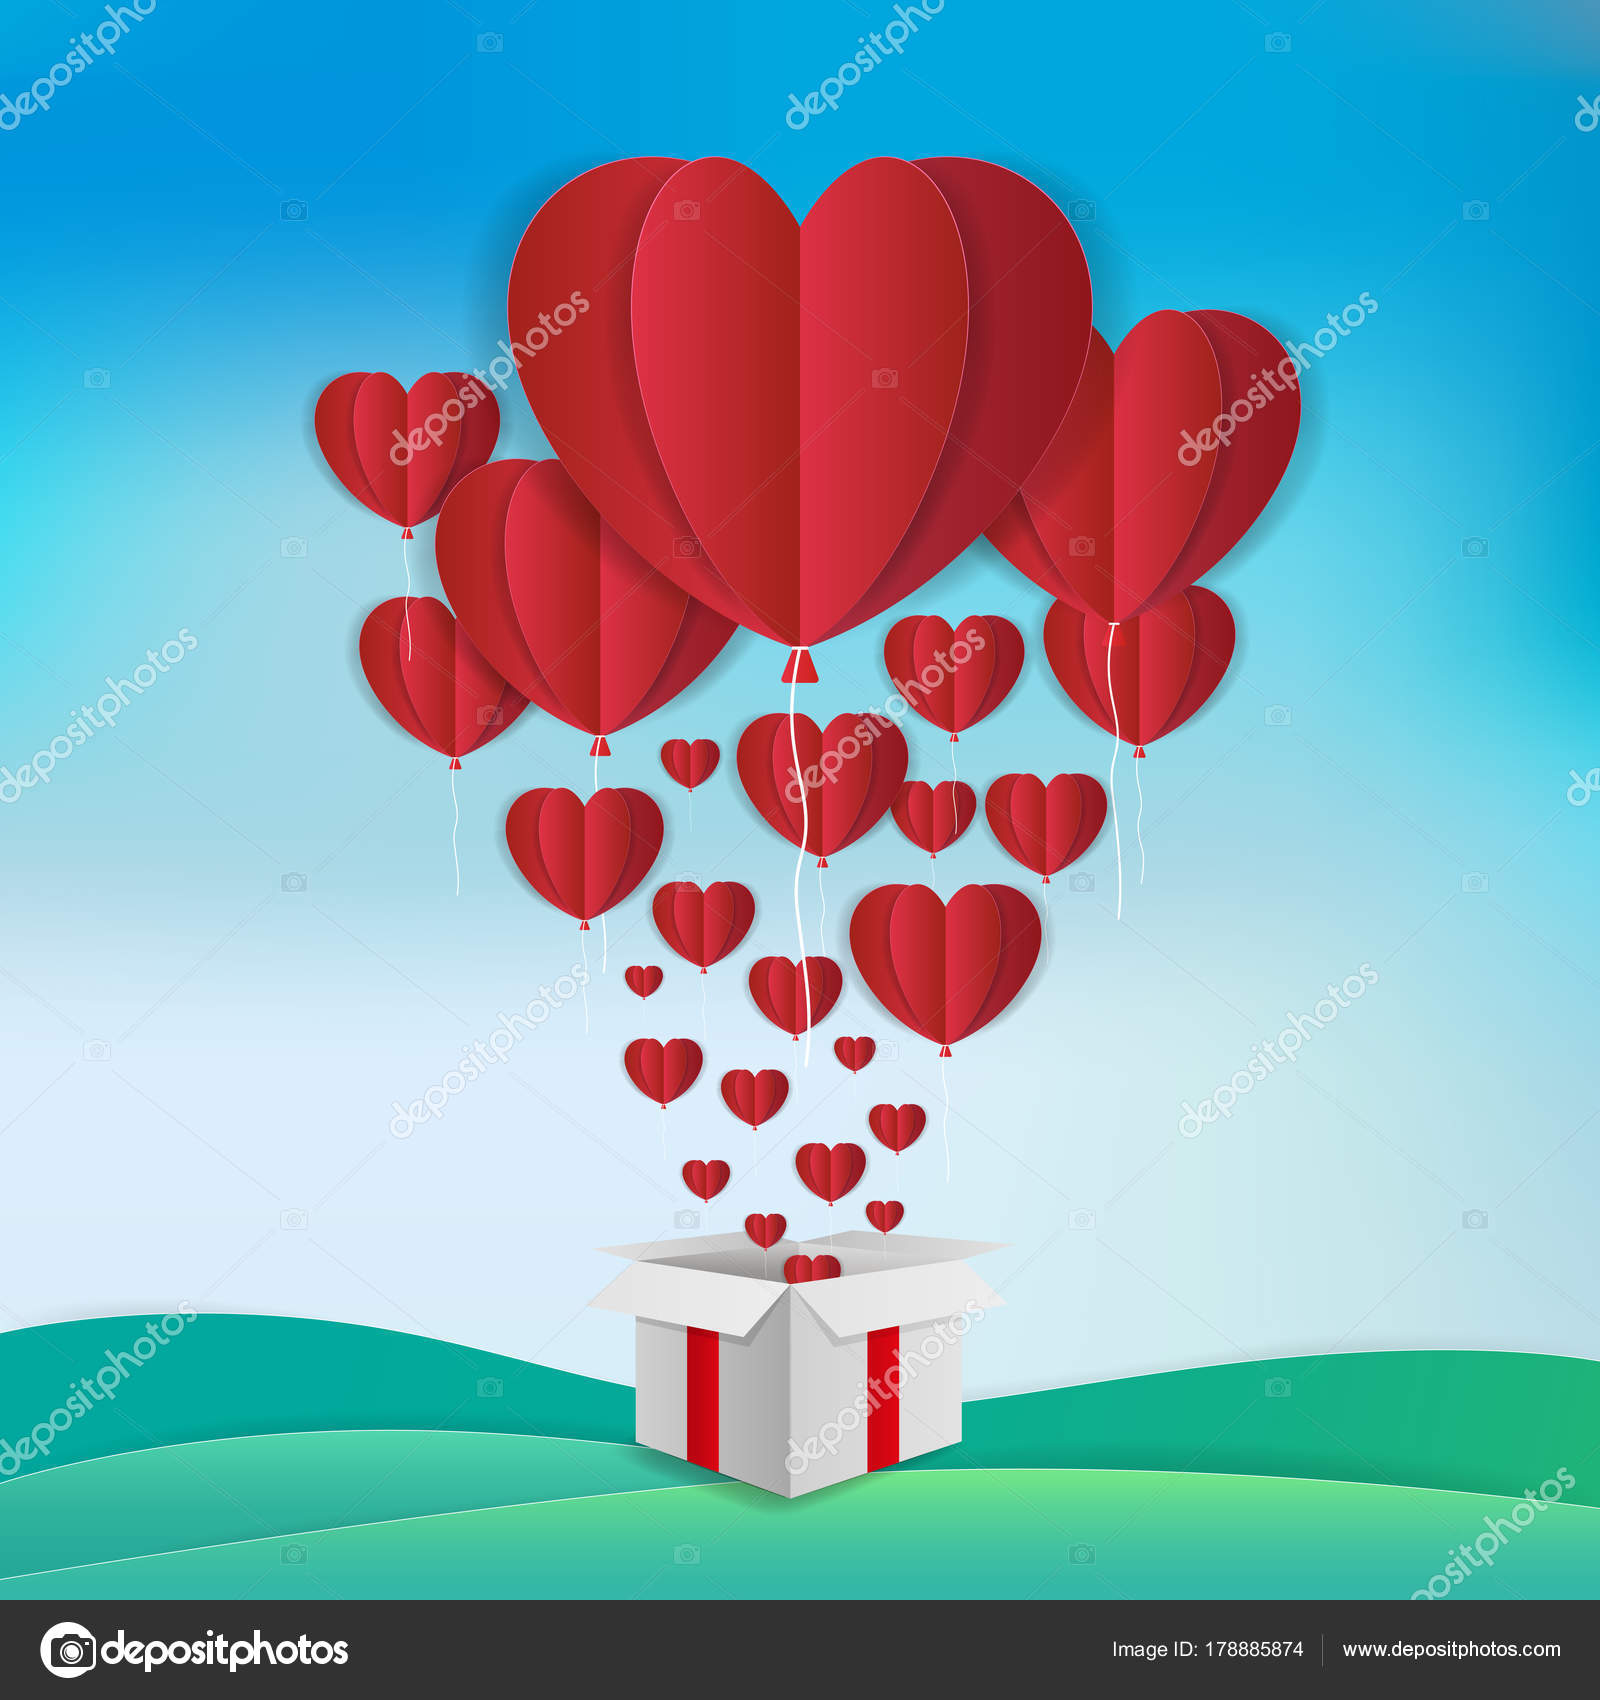 Love And Valentine Day Theme Background Red Balloons In Heart Shape